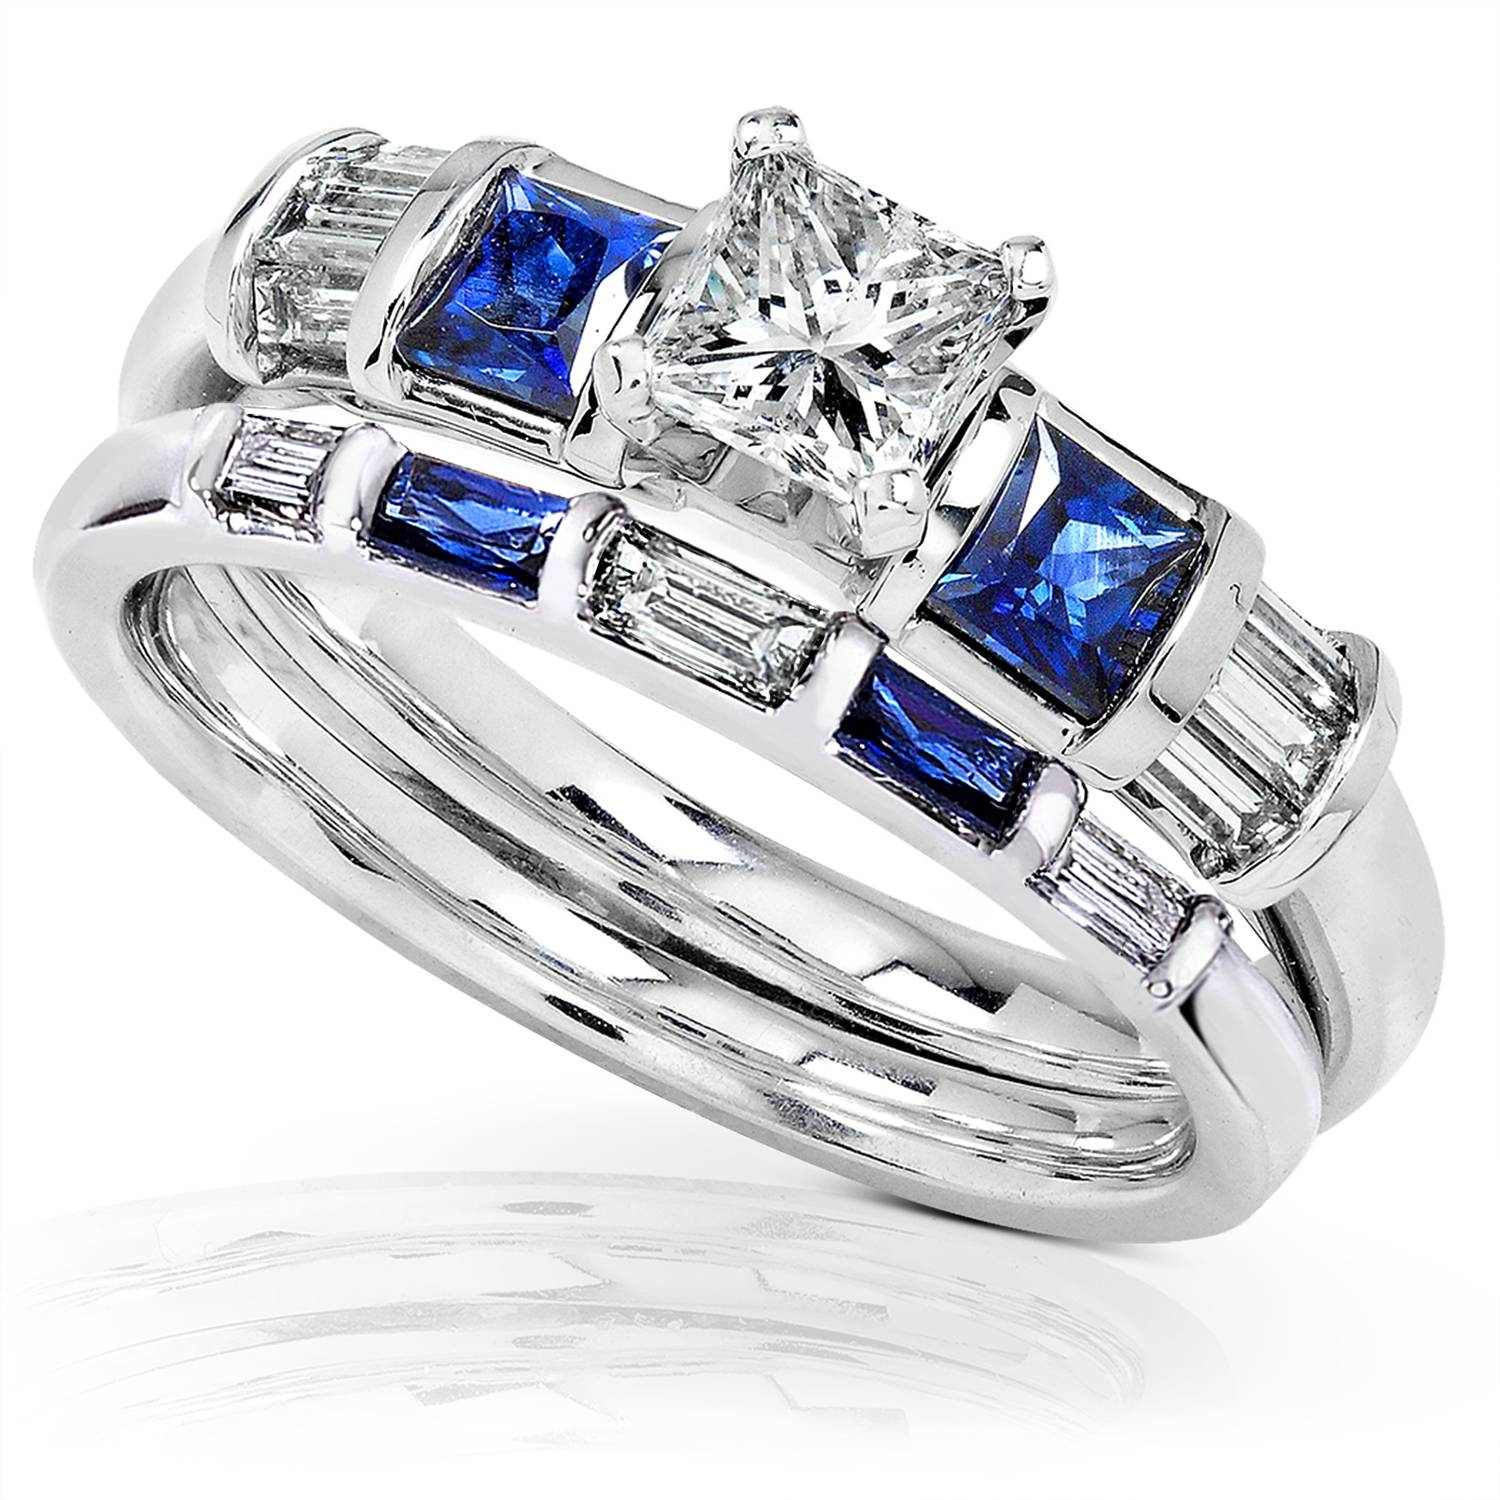 Blue Sapphire & Diamond Wedding Rings Set 1 Carat (Ctw) In 14K With Blue Diamond Wedding Ring Sets (View 7 of 15)